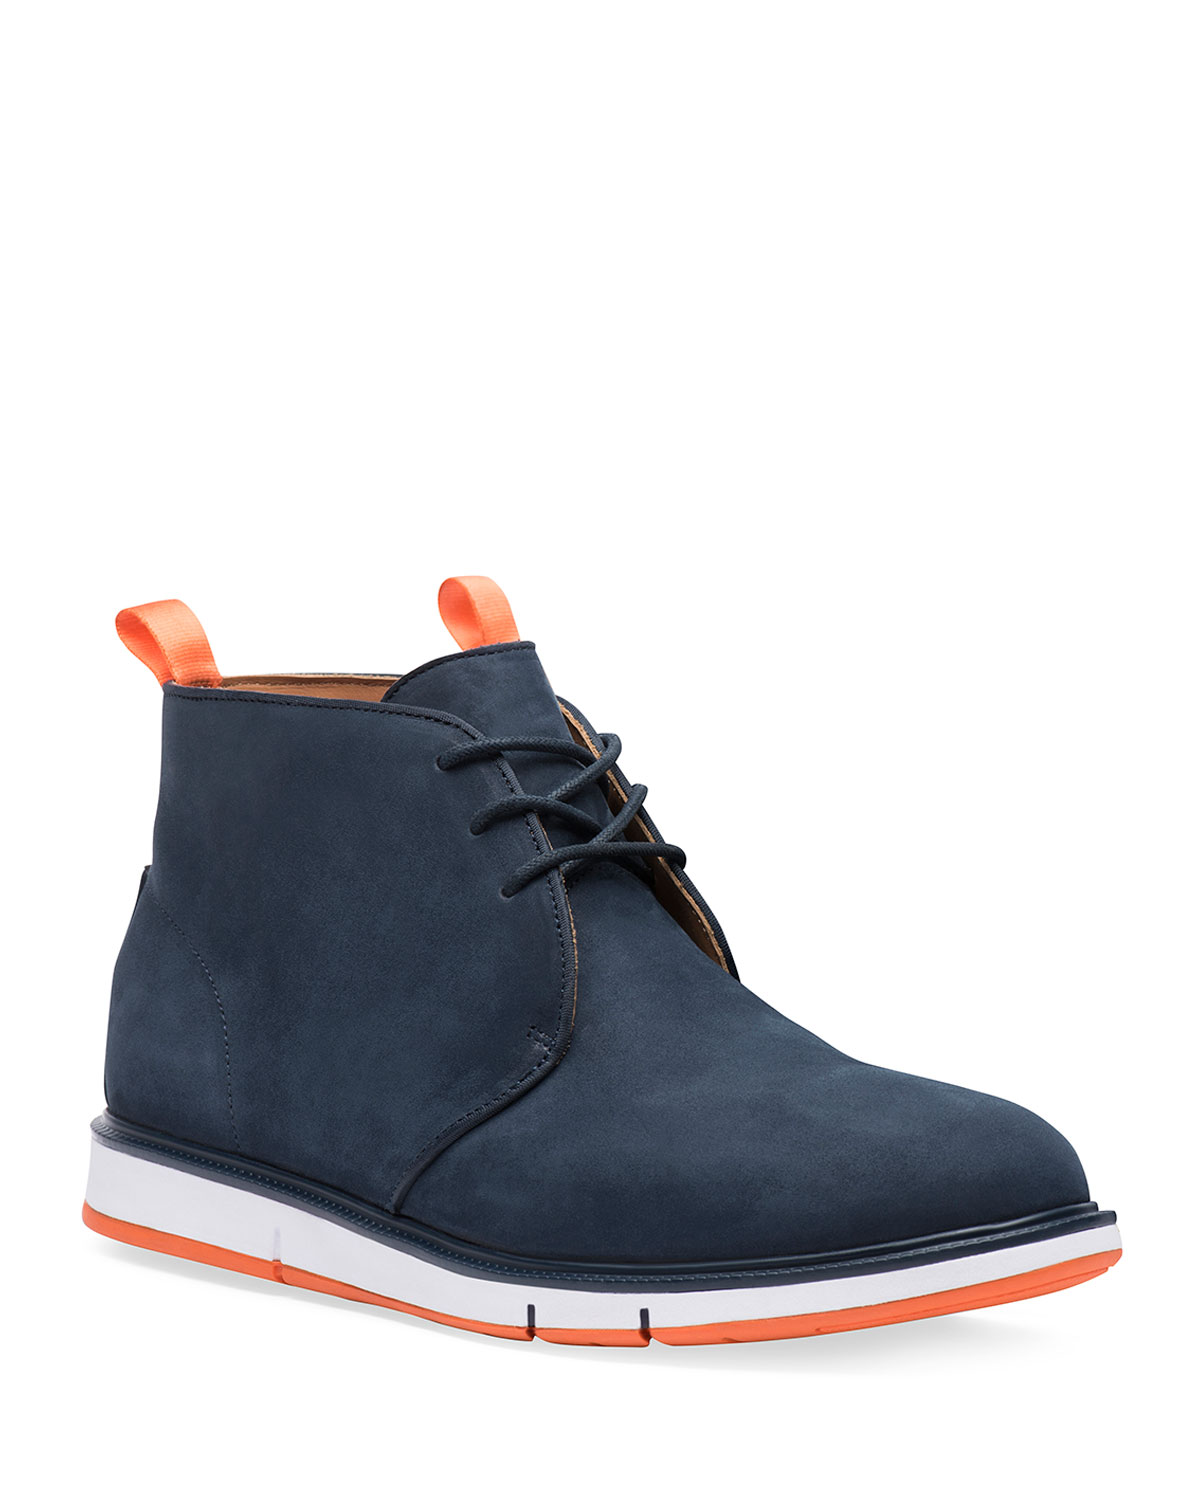 Men's Motion Chukka Boots